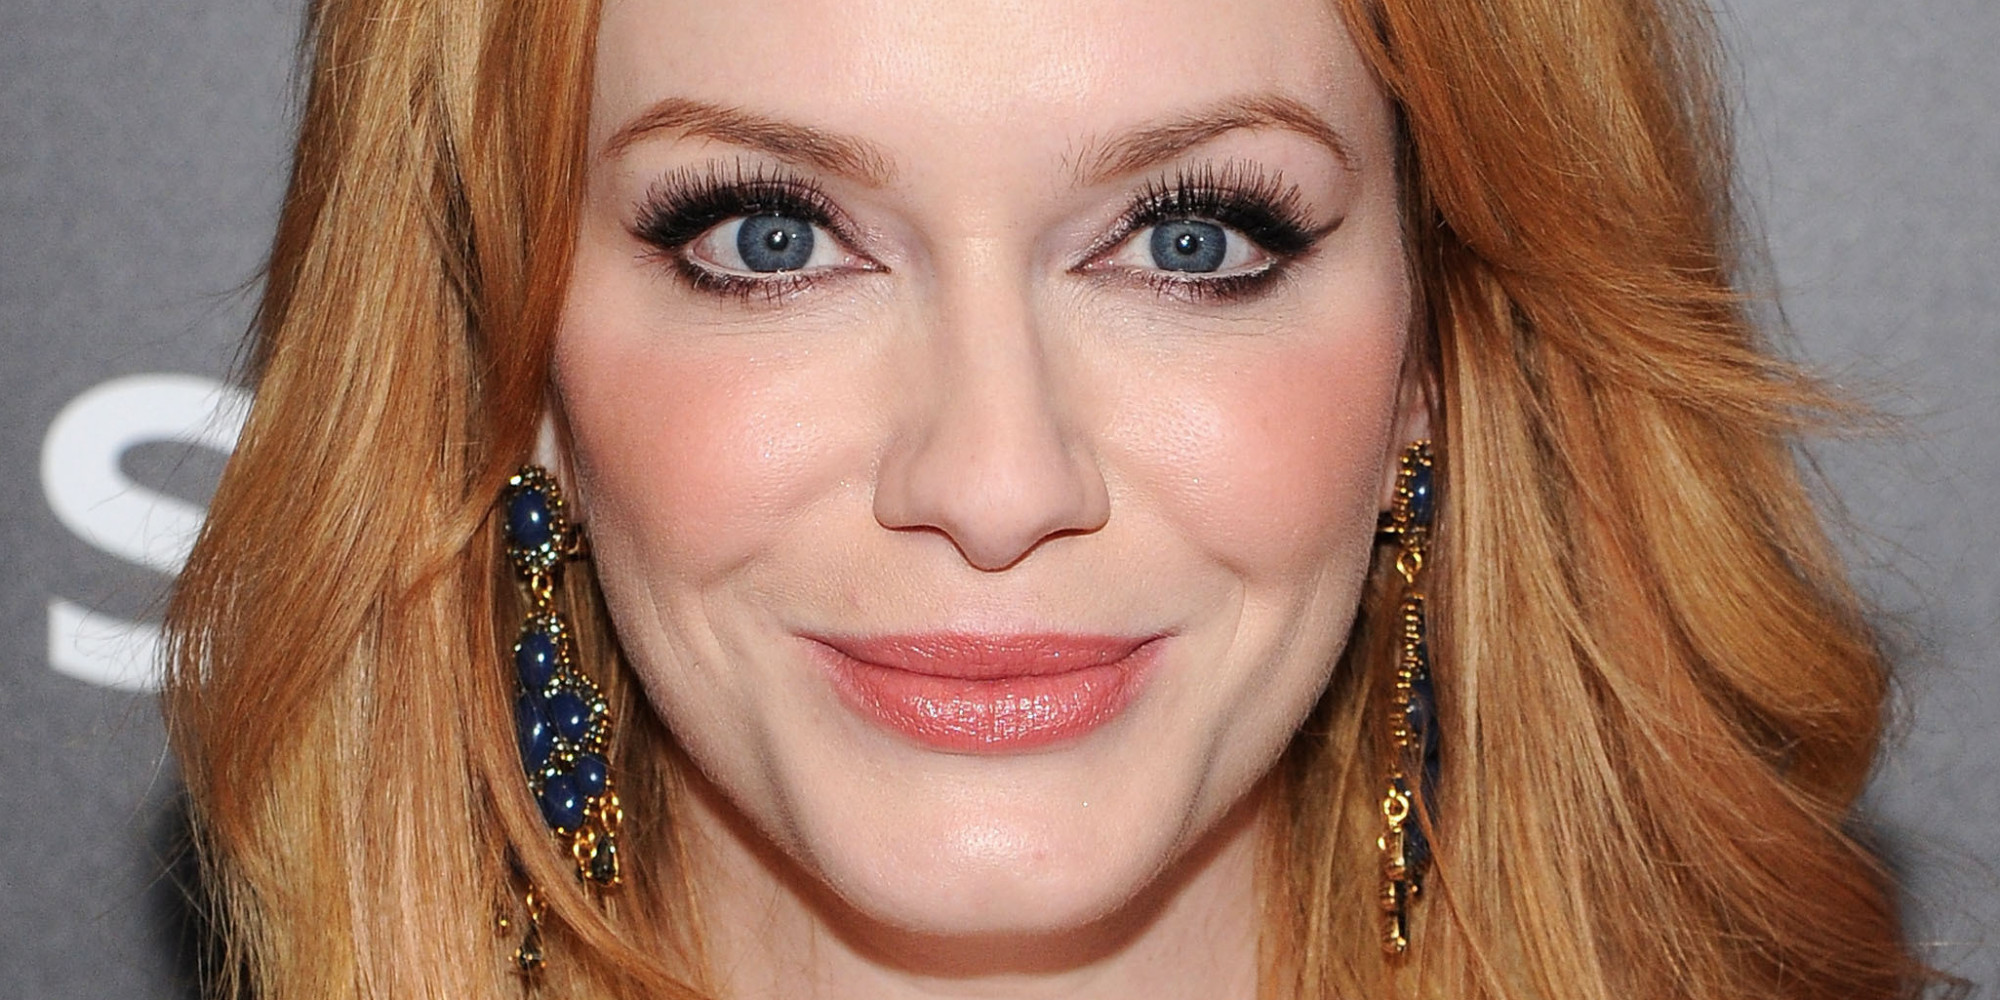 Christina Hendricks Strawberry Blonde Hair Tops This Week S Celebrity Beauty List Huffpost